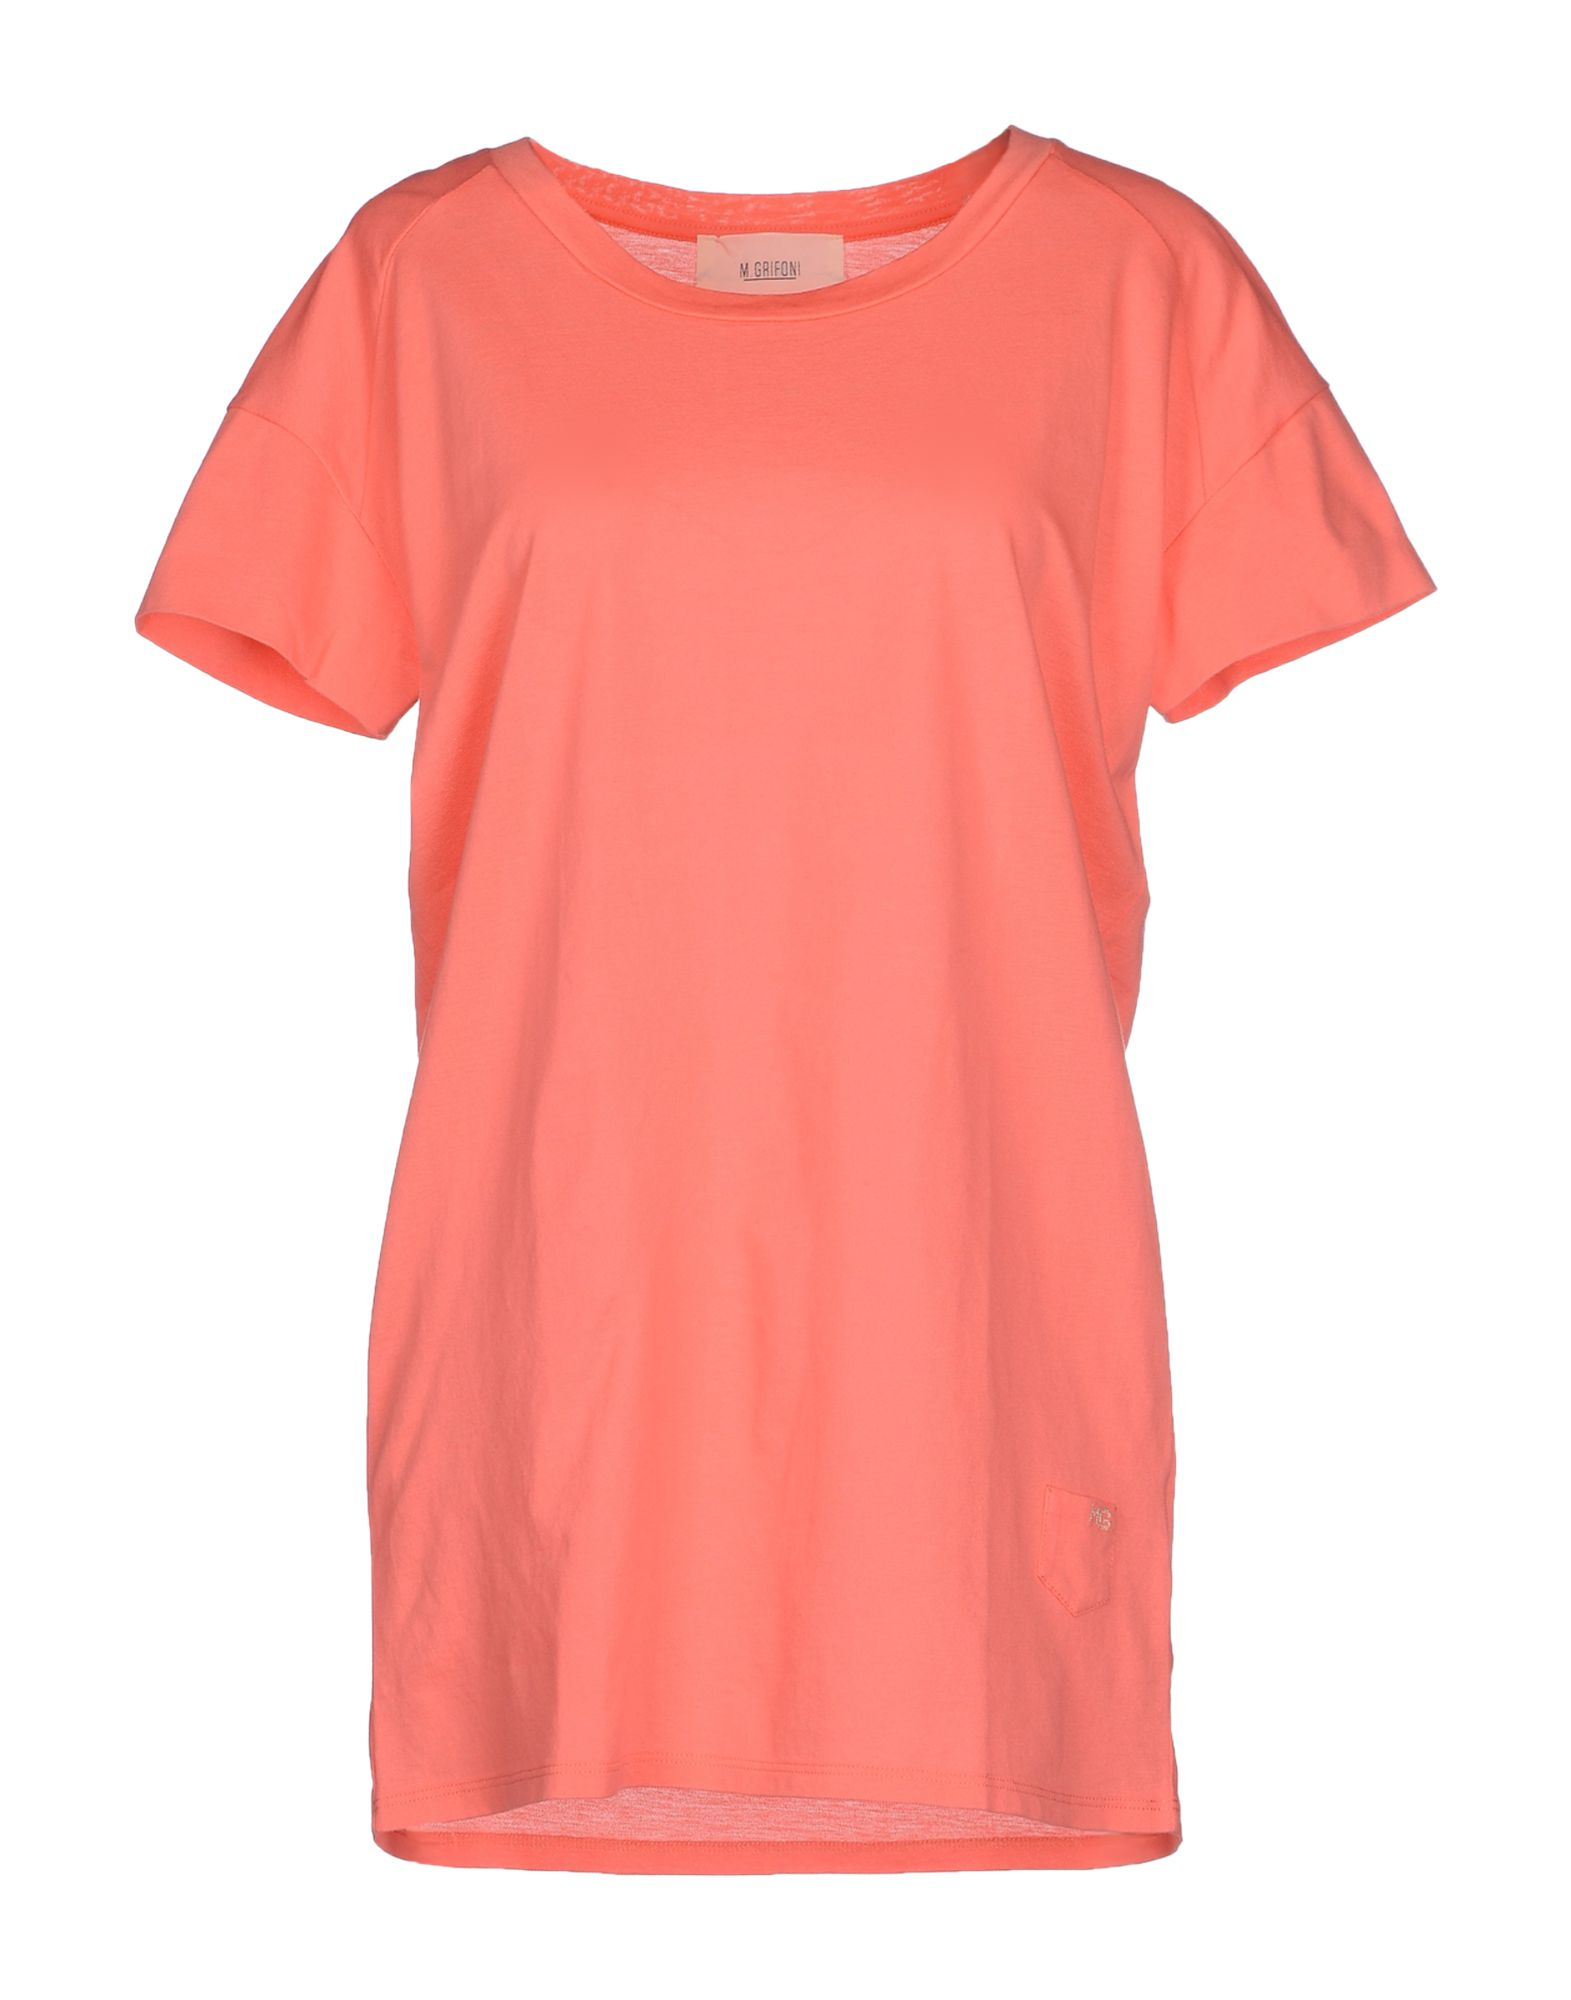 M Grifoni Denim T Shirt In Pink For Men Coral Lyst